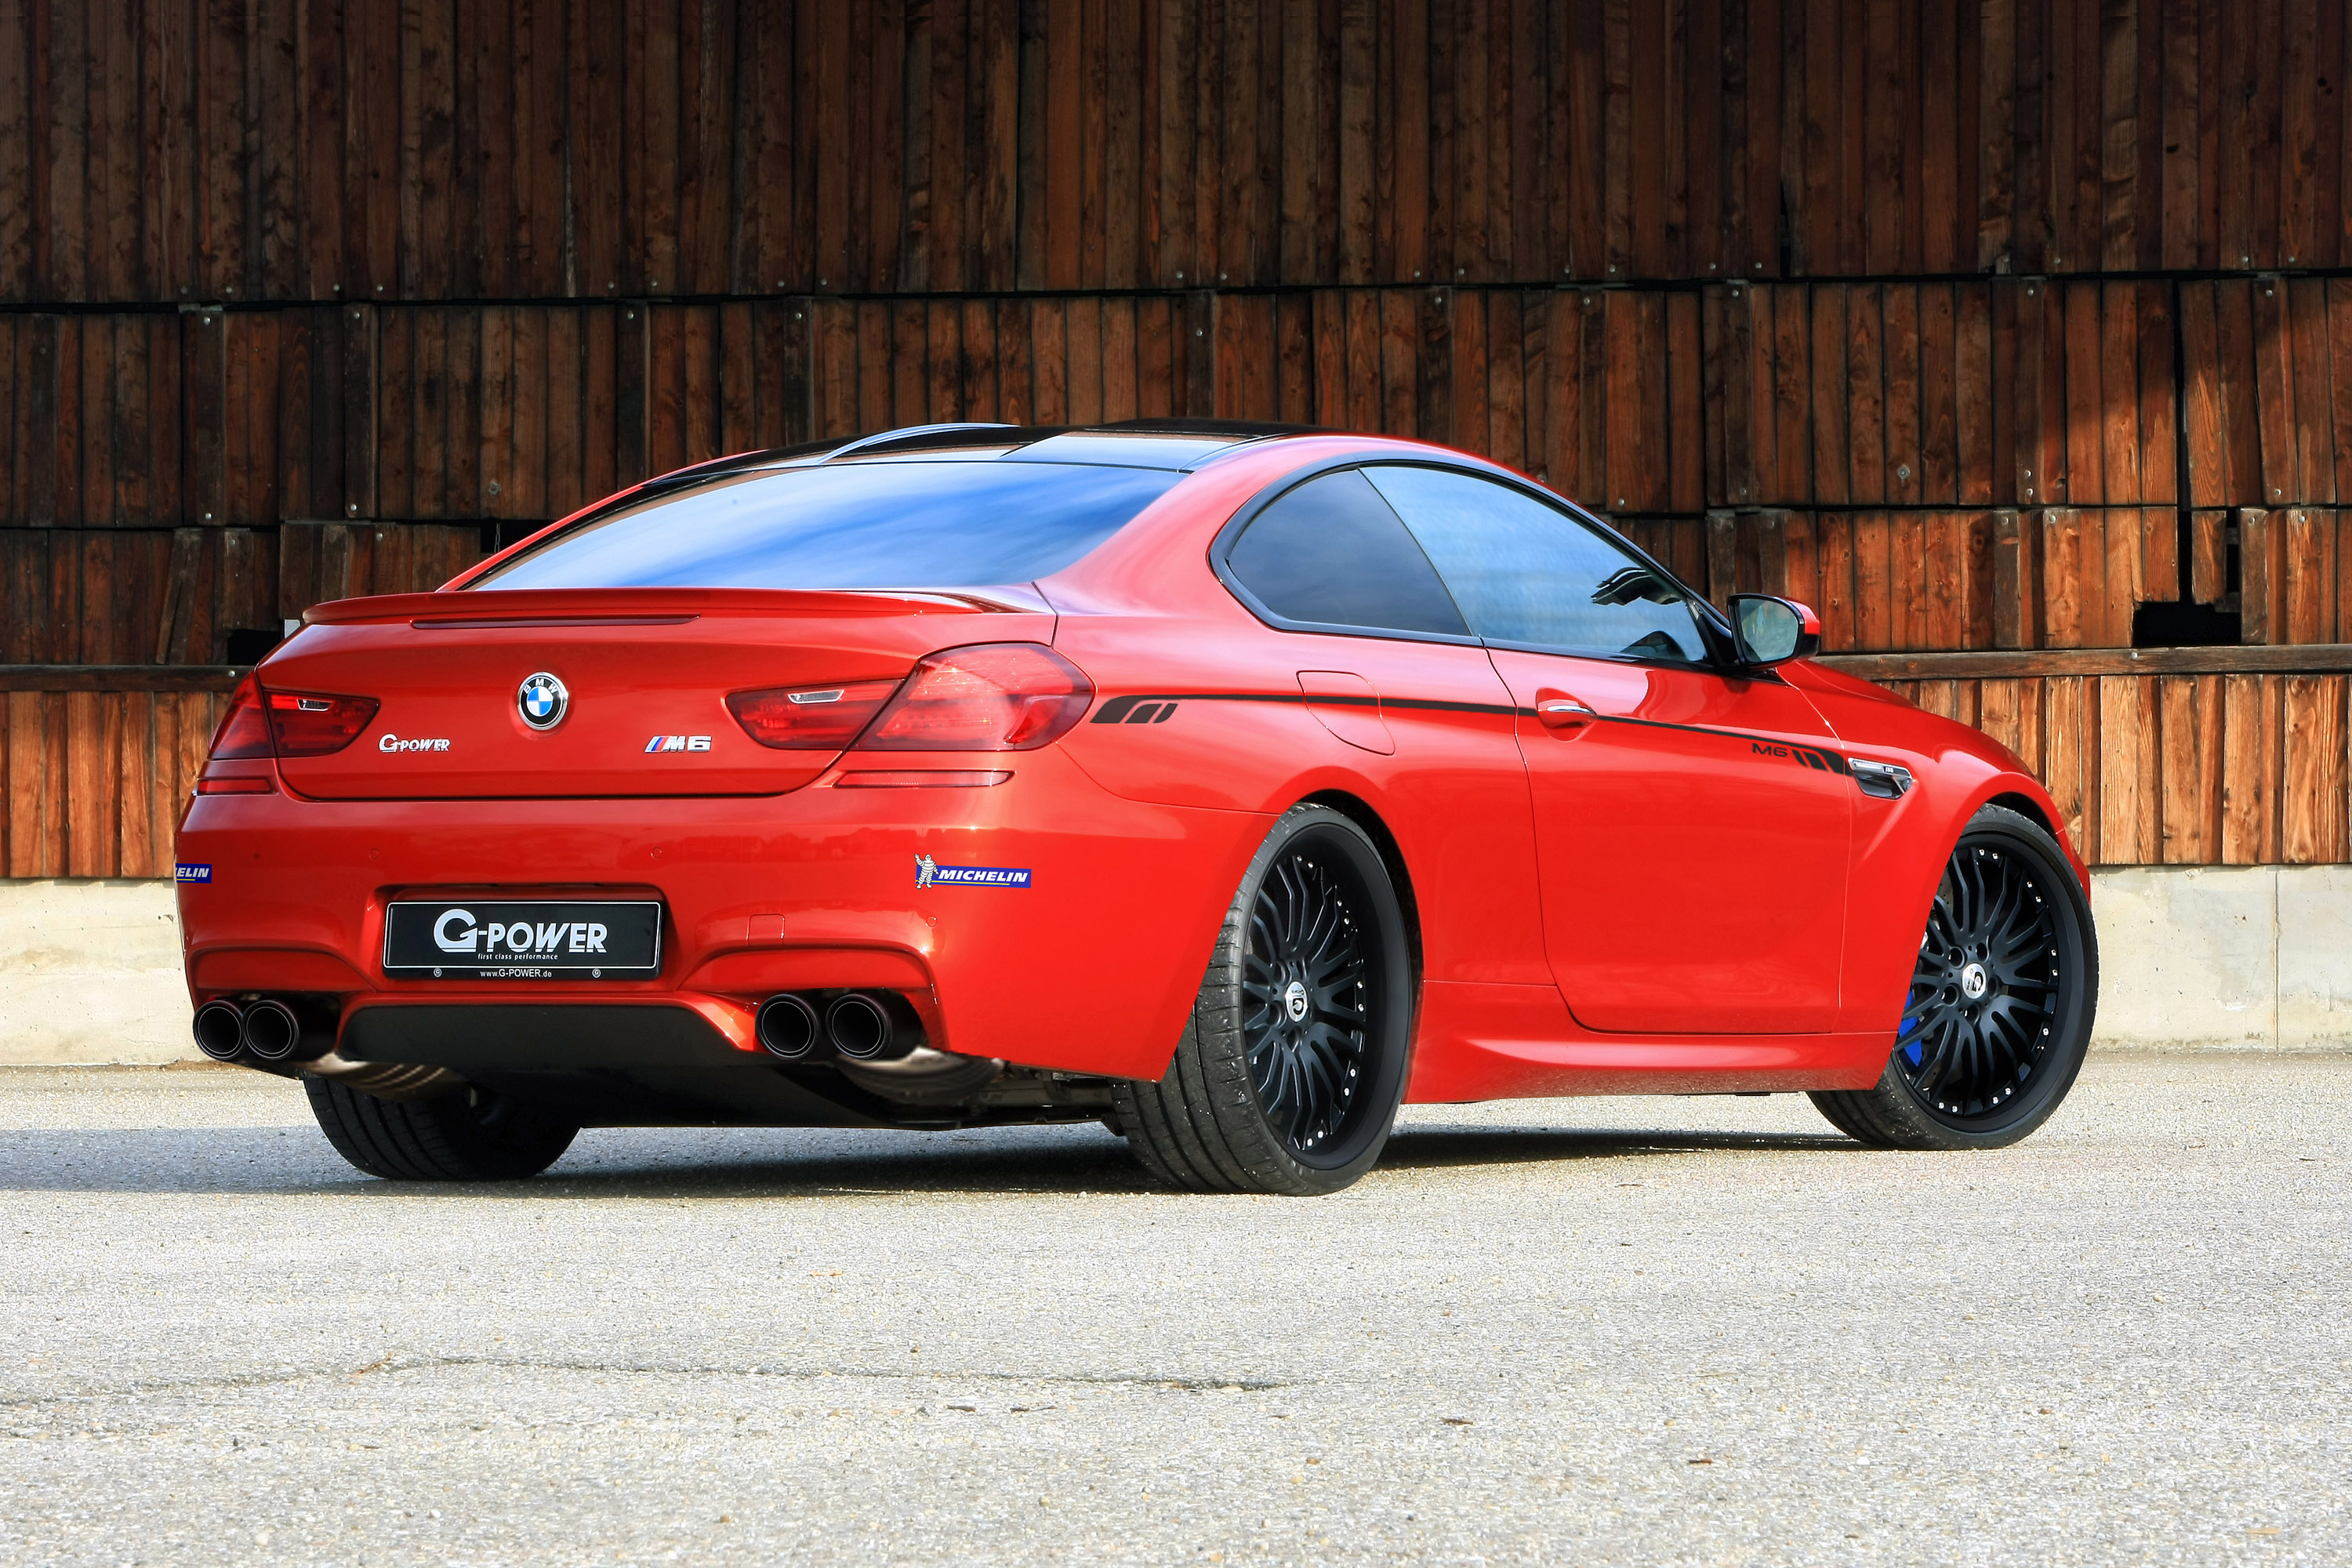 g power bmw m6 f13 coupe 640hp and 777nm. Black Bedroom Furniture Sets. Home Design Ideas